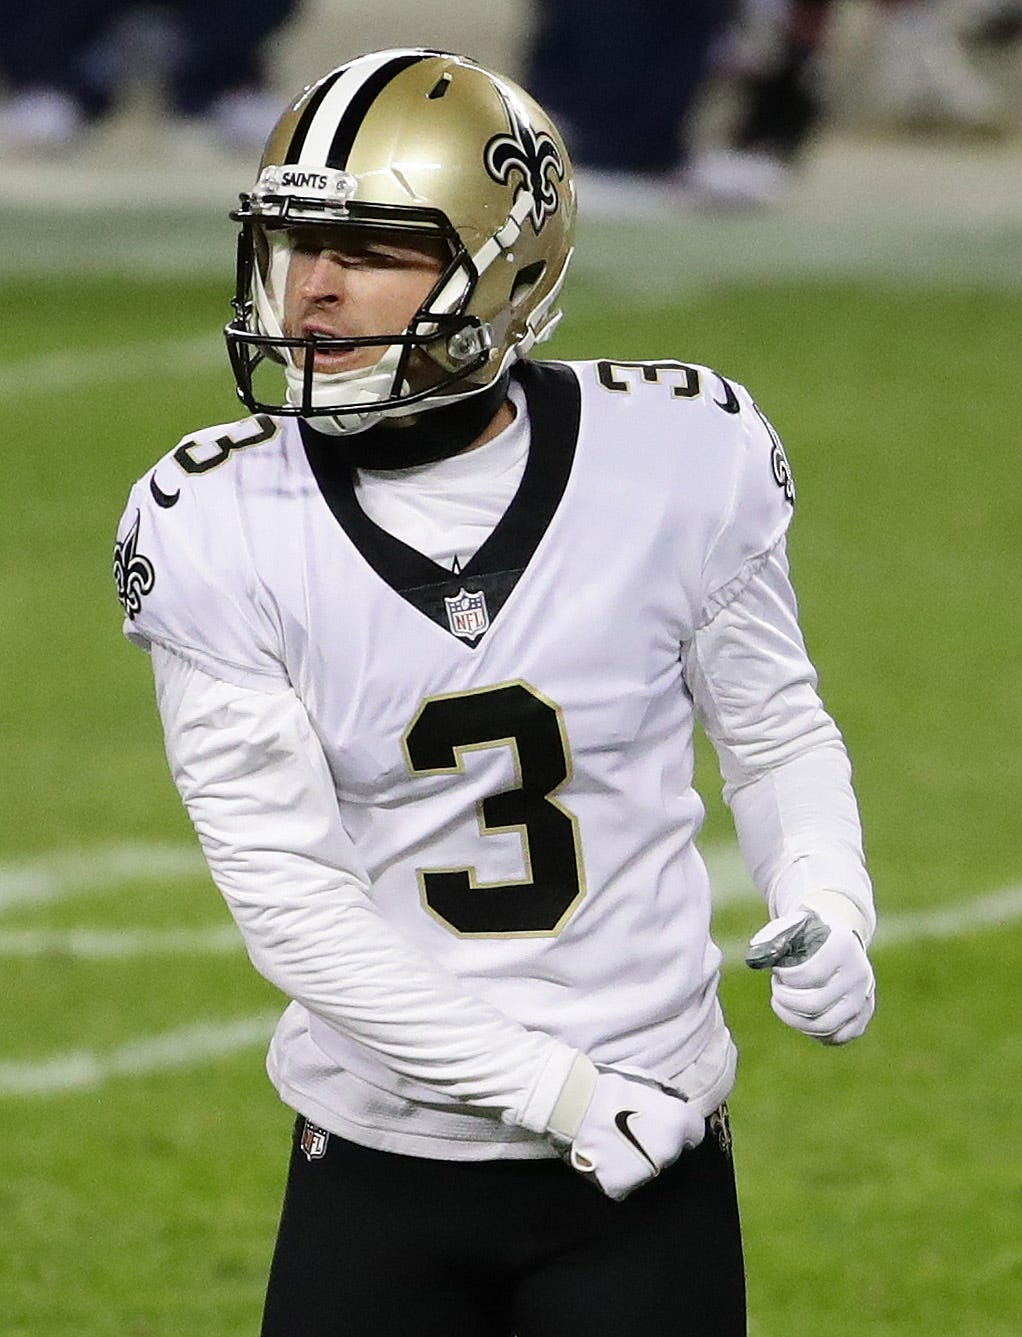 Opinion: Close wins nerve-wracking but might make New Orleans Saints better in long run